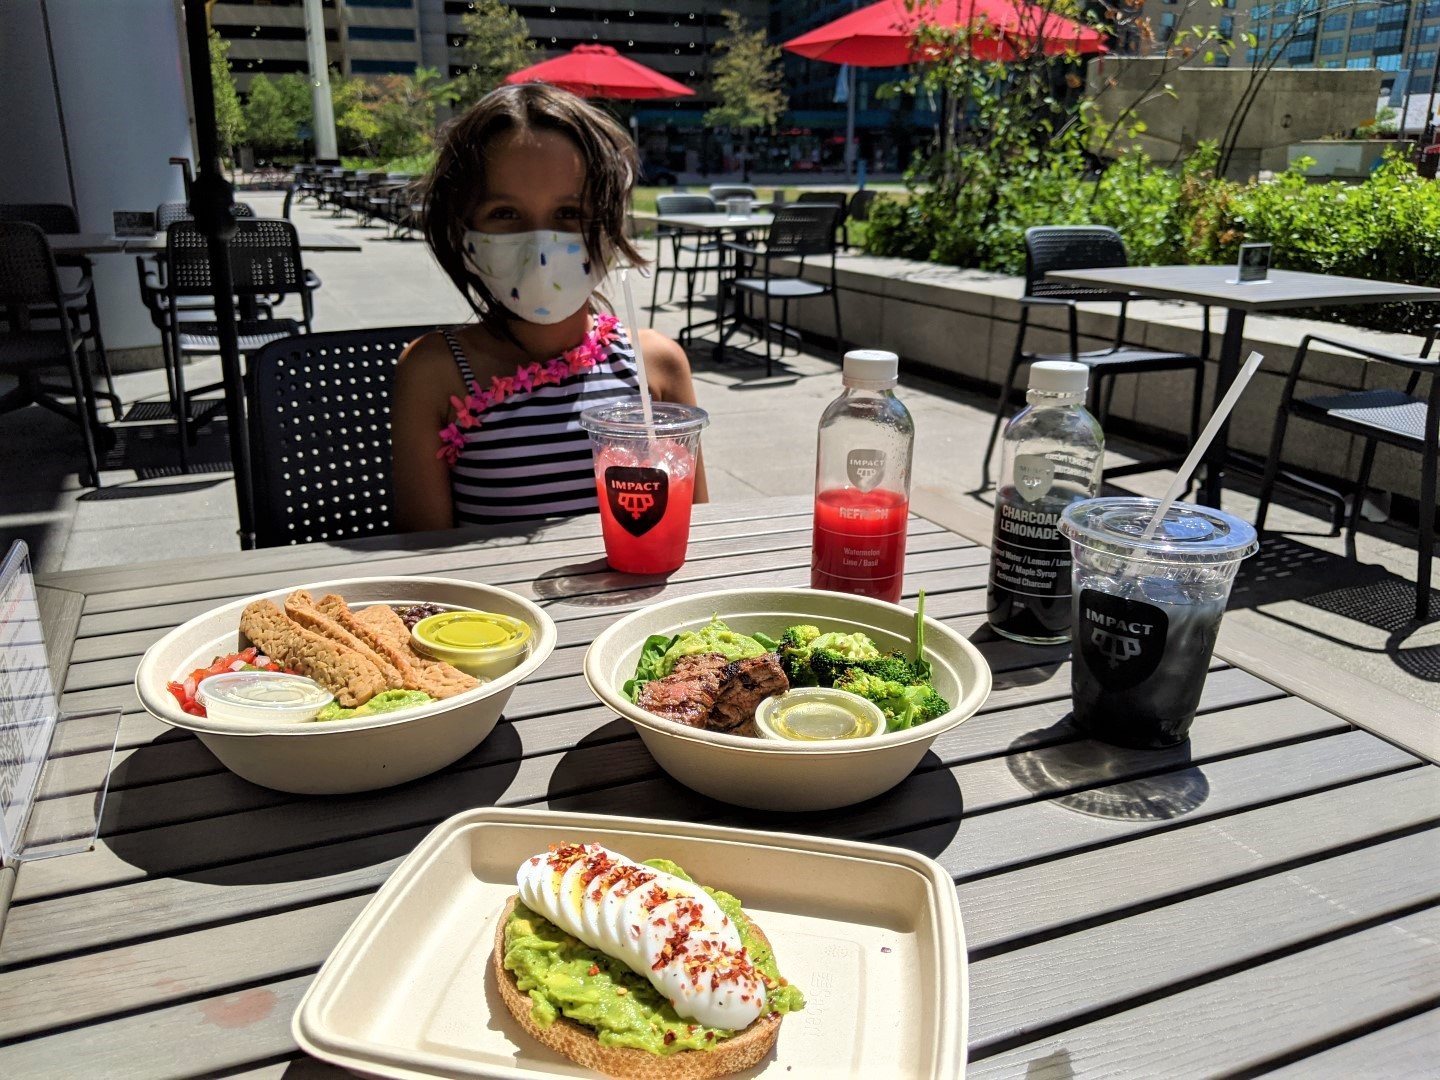 masked girl with healthy food at patio